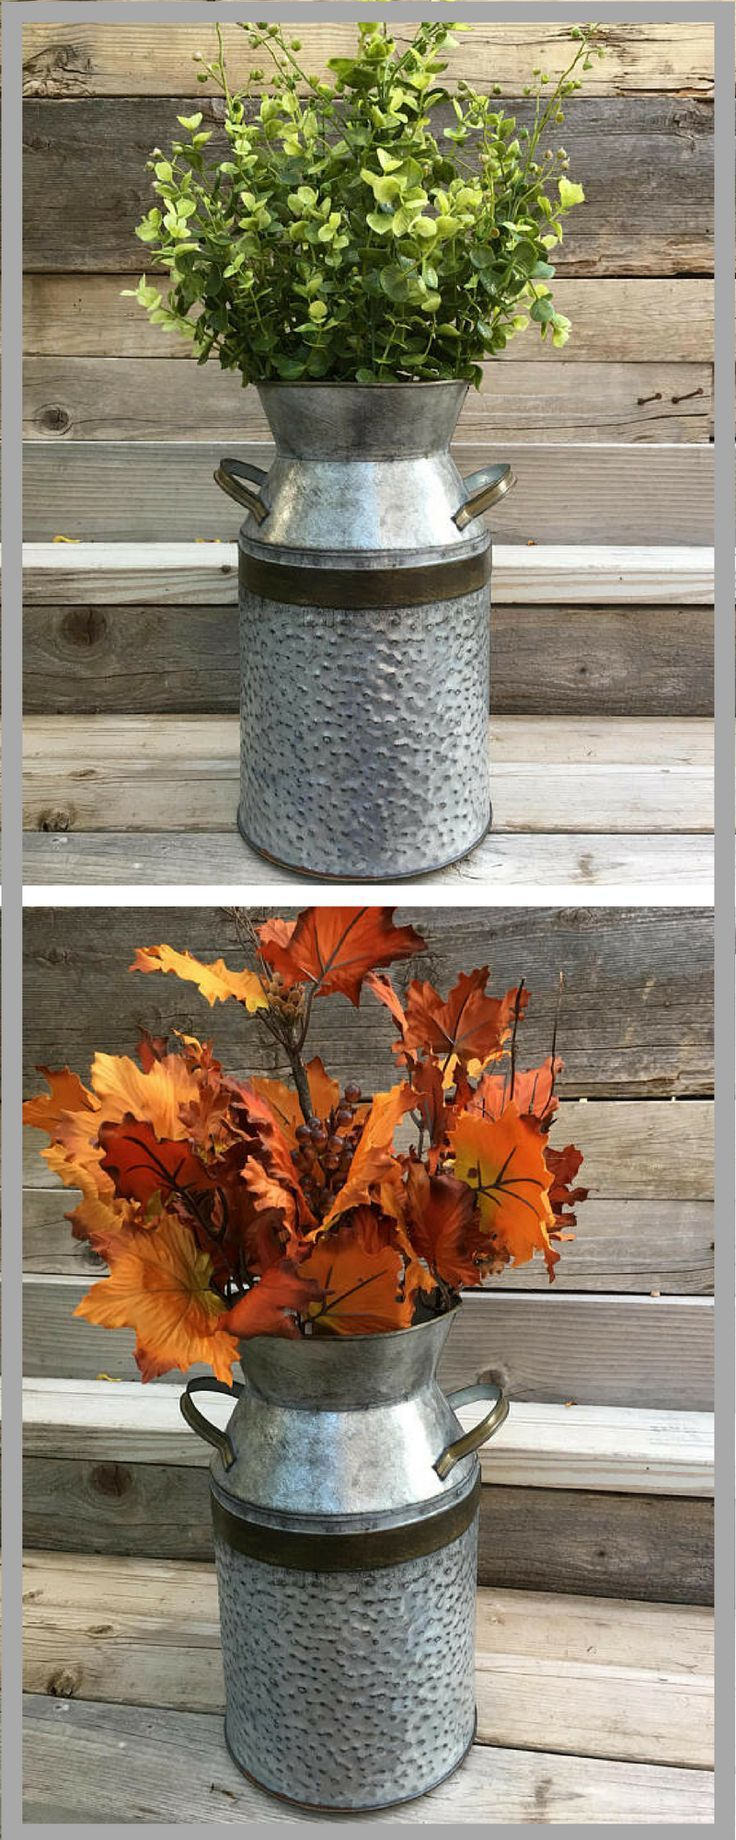 Adorable milk can decor - perfect for my front porch! Single Milk Can With Greenery or Fall Leaves, Farmhouse Floral Arrangement, Rusitc Milk Can with Greenery, Metal Farmhouse Decor, Home Decor #ad #afflink #milkcan #farmhouse